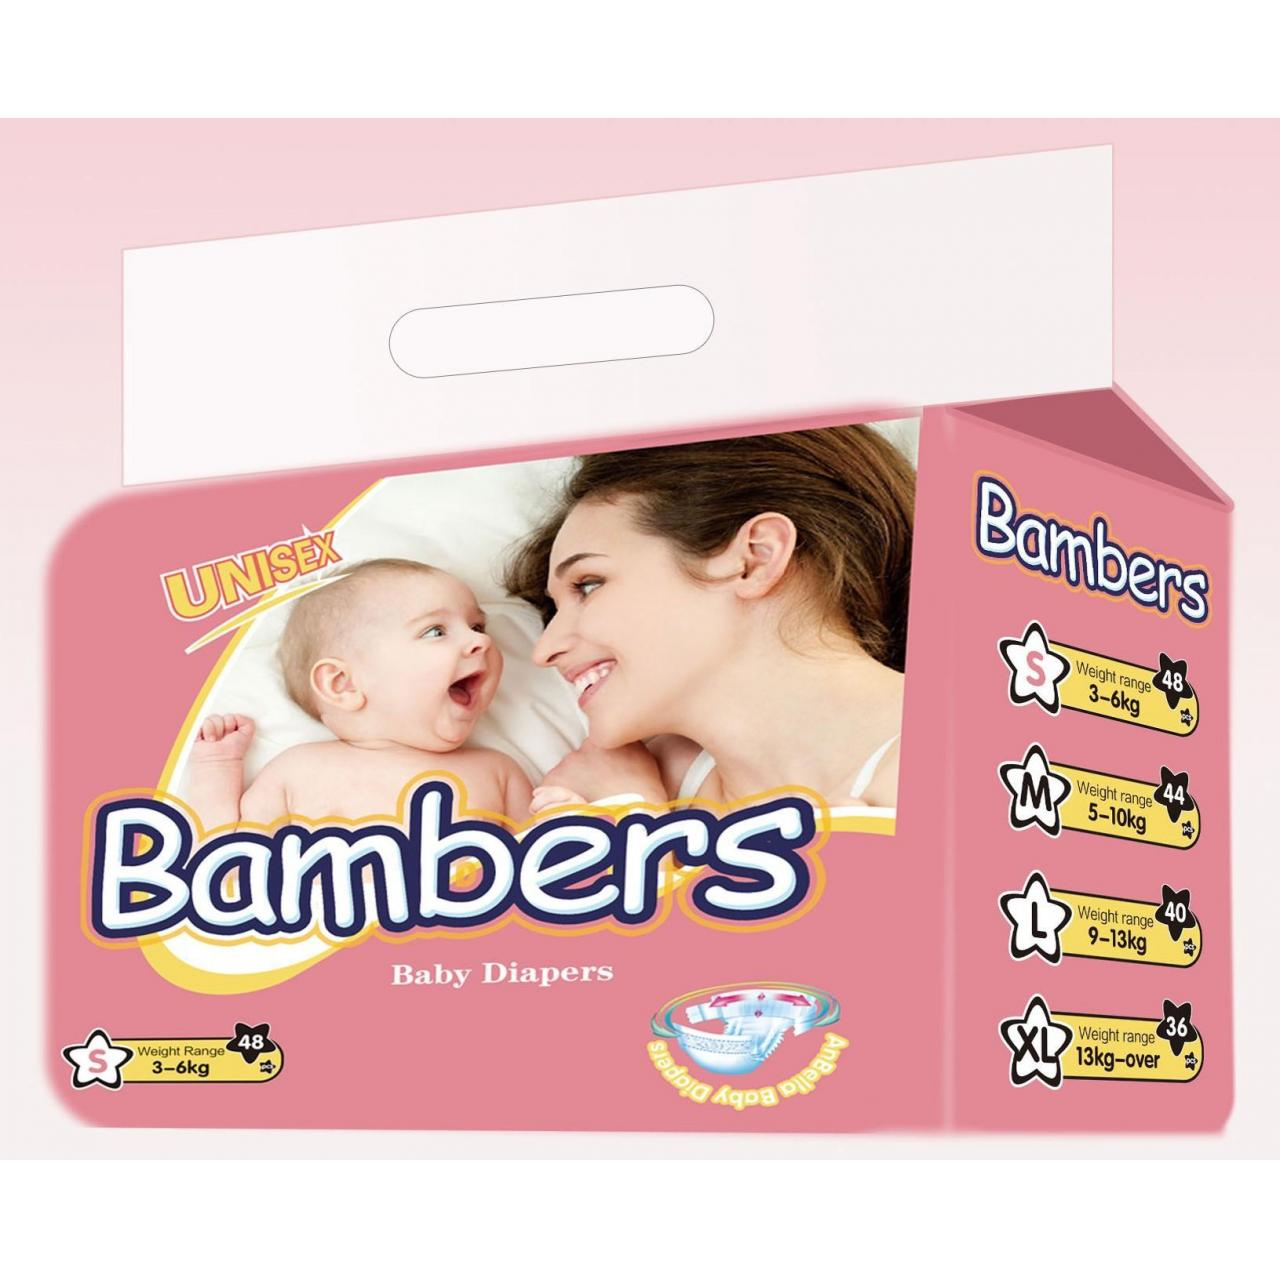 Baby Diapers baby S